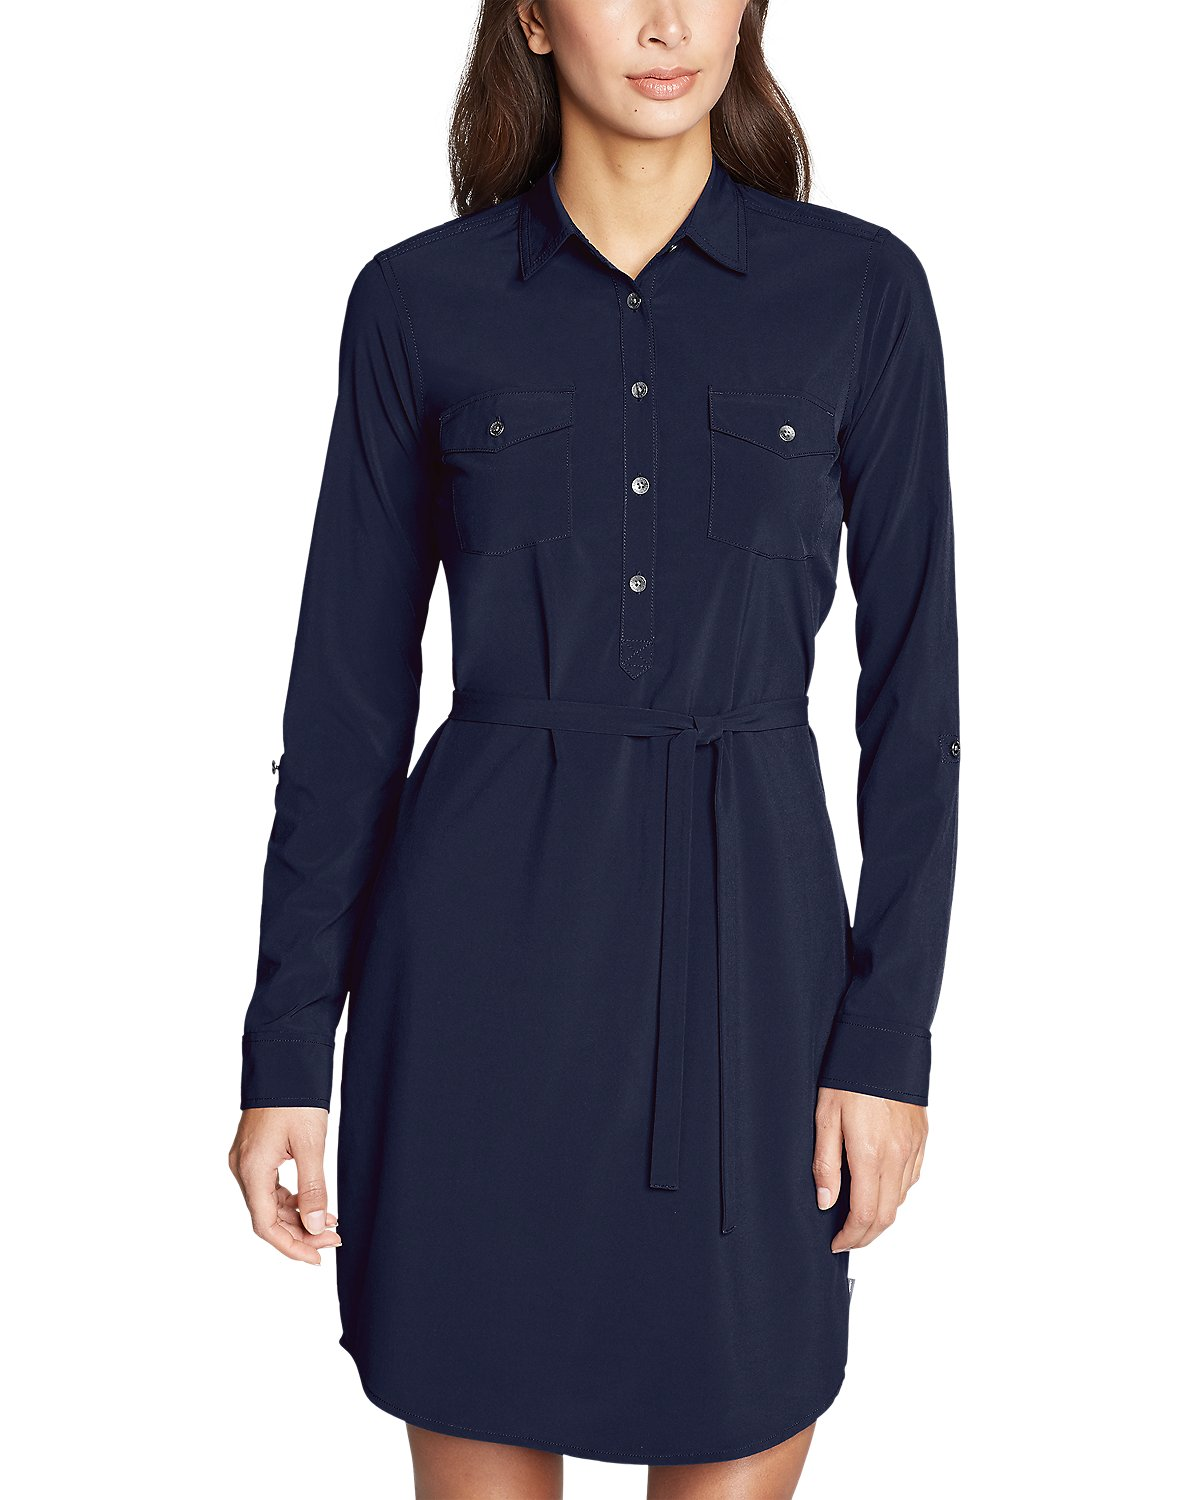 Eddie Bauer's Departure Long-Sleeve Shirt Dress — Professional Clothes For People Who Sweat